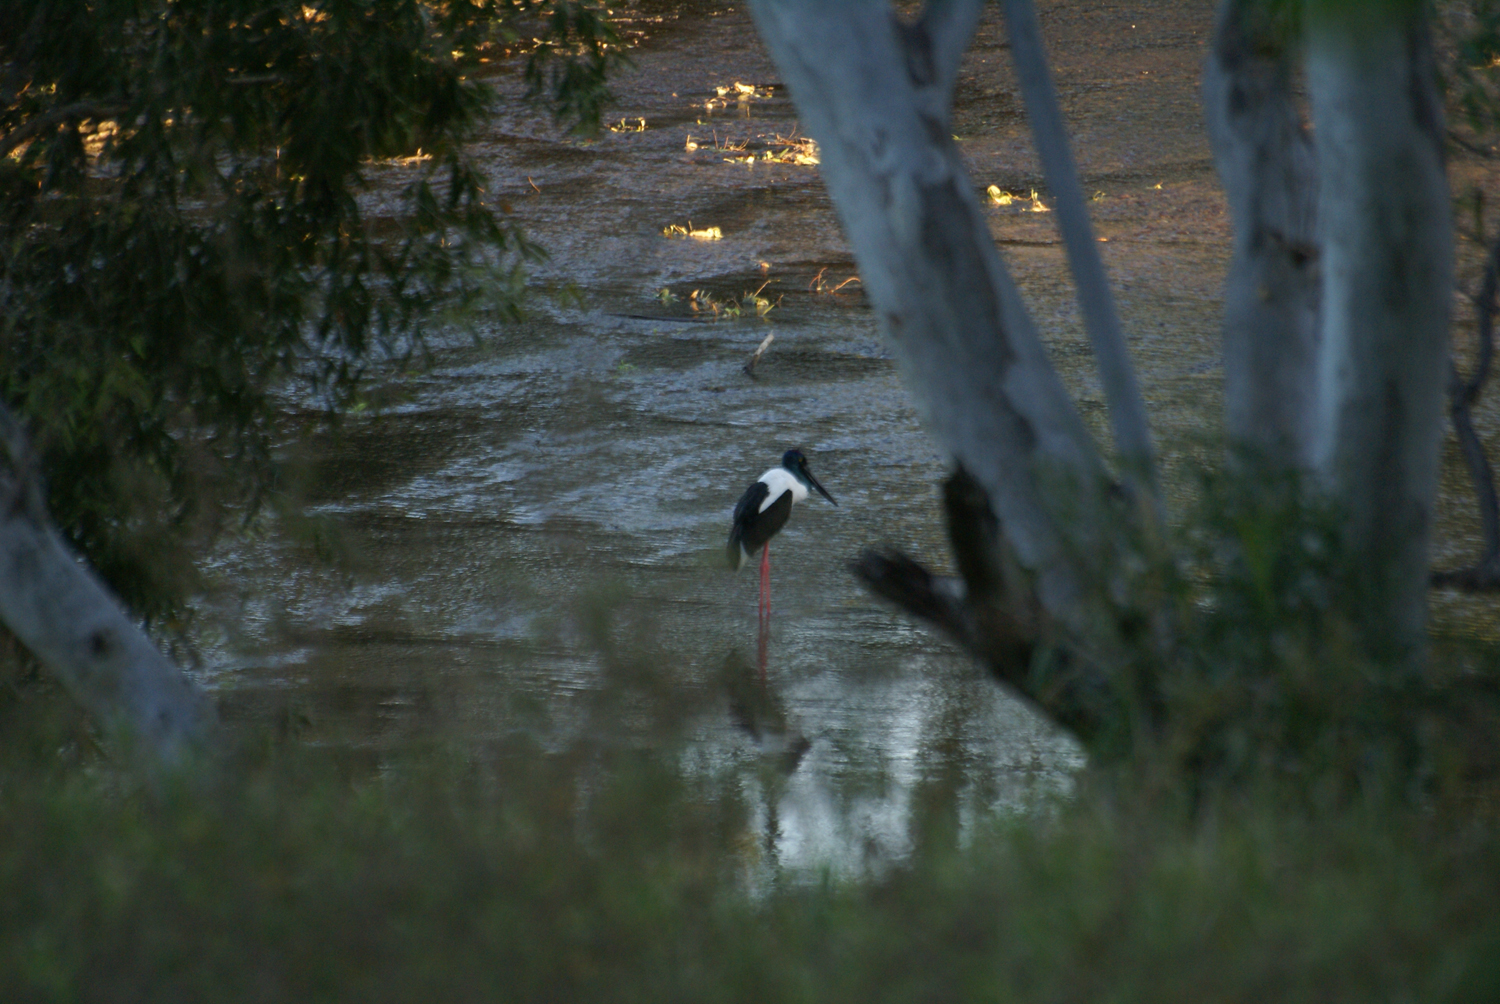 Jabiru in the early morning hour